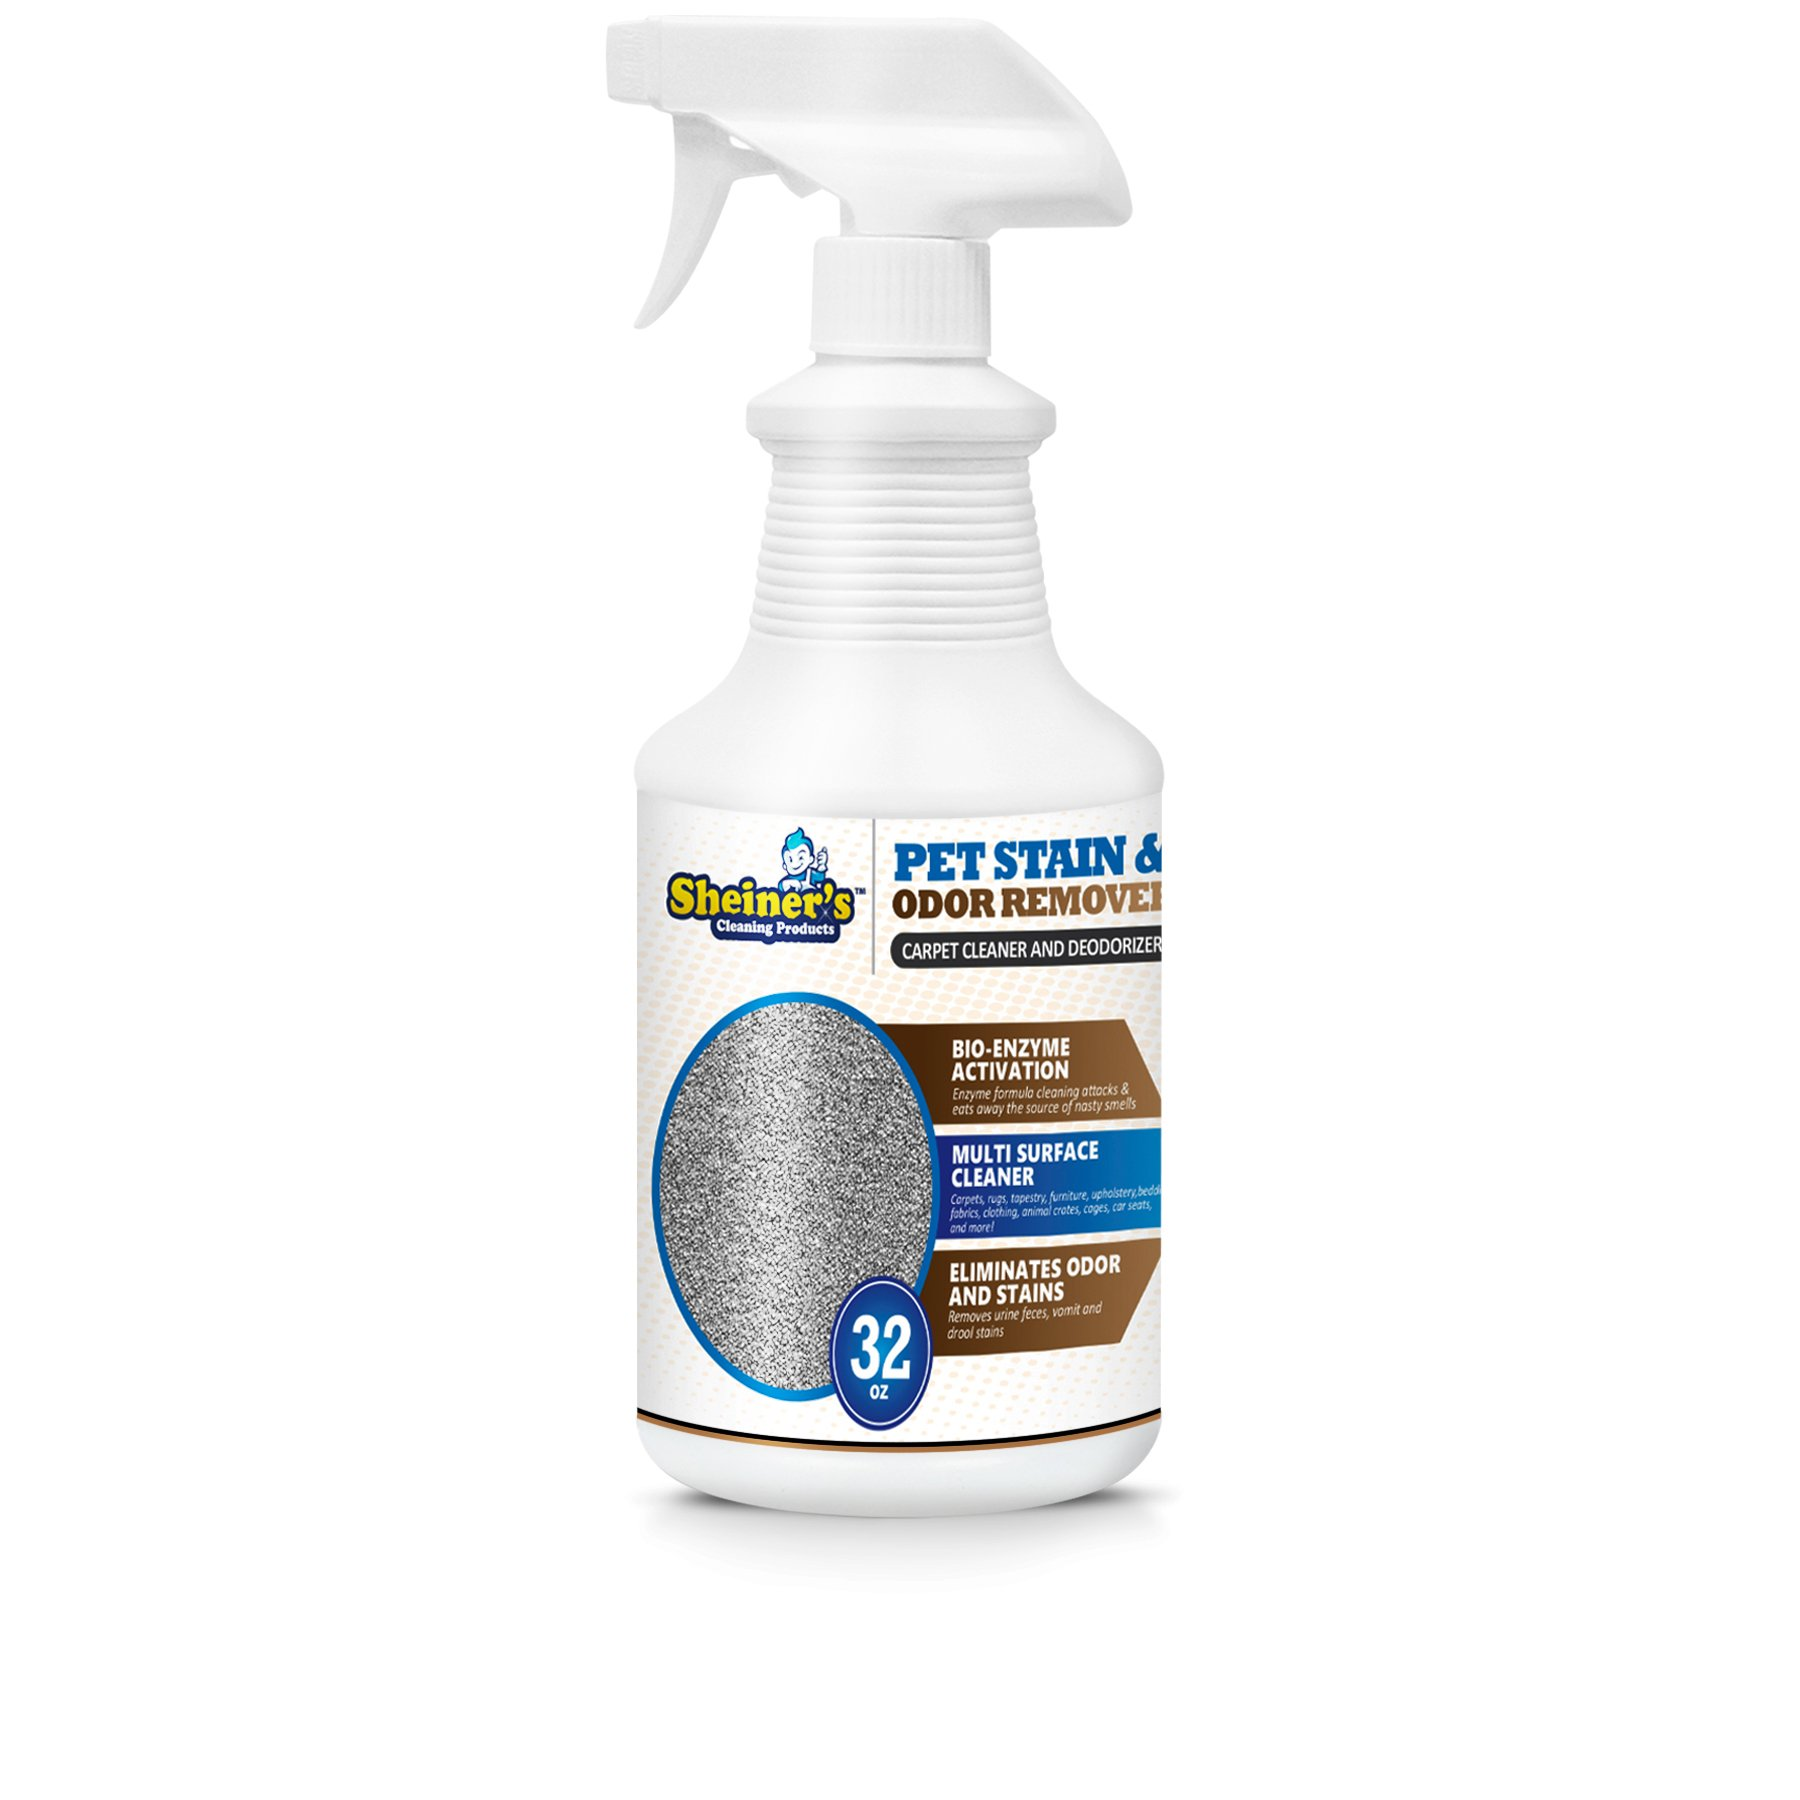 Sheiner's Pet Stain Odor Remover, Professional Strength Enzyme Powered Cleaner (32, 32.00)